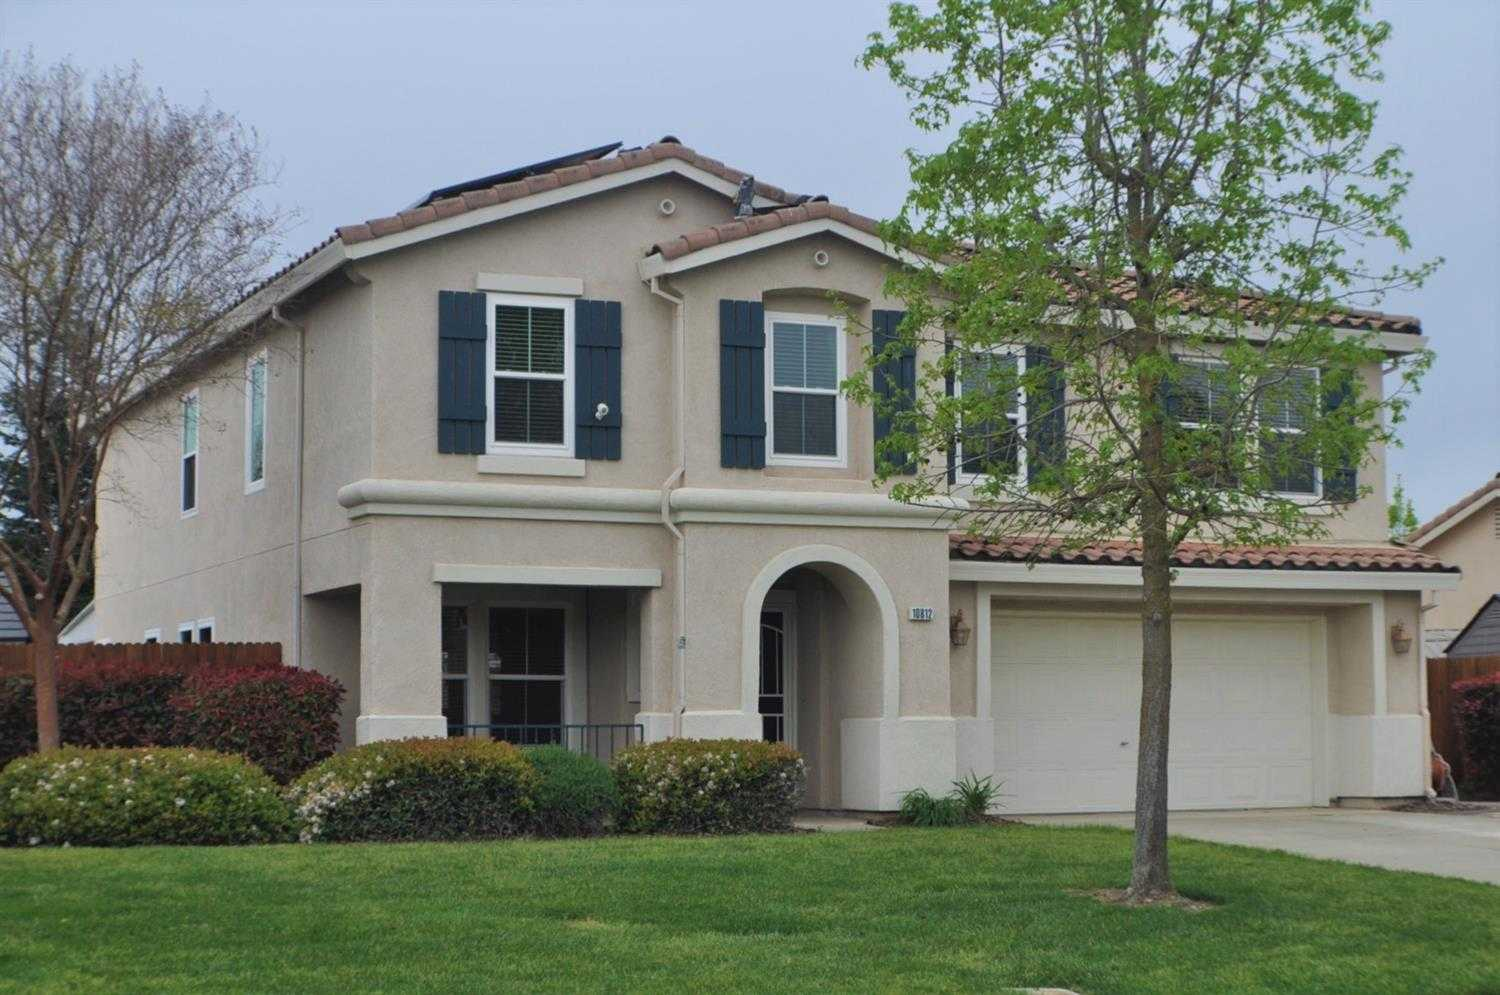 $489,500,000 - 5Br/3Ba -  for Sale in Independence At Mather, Mather